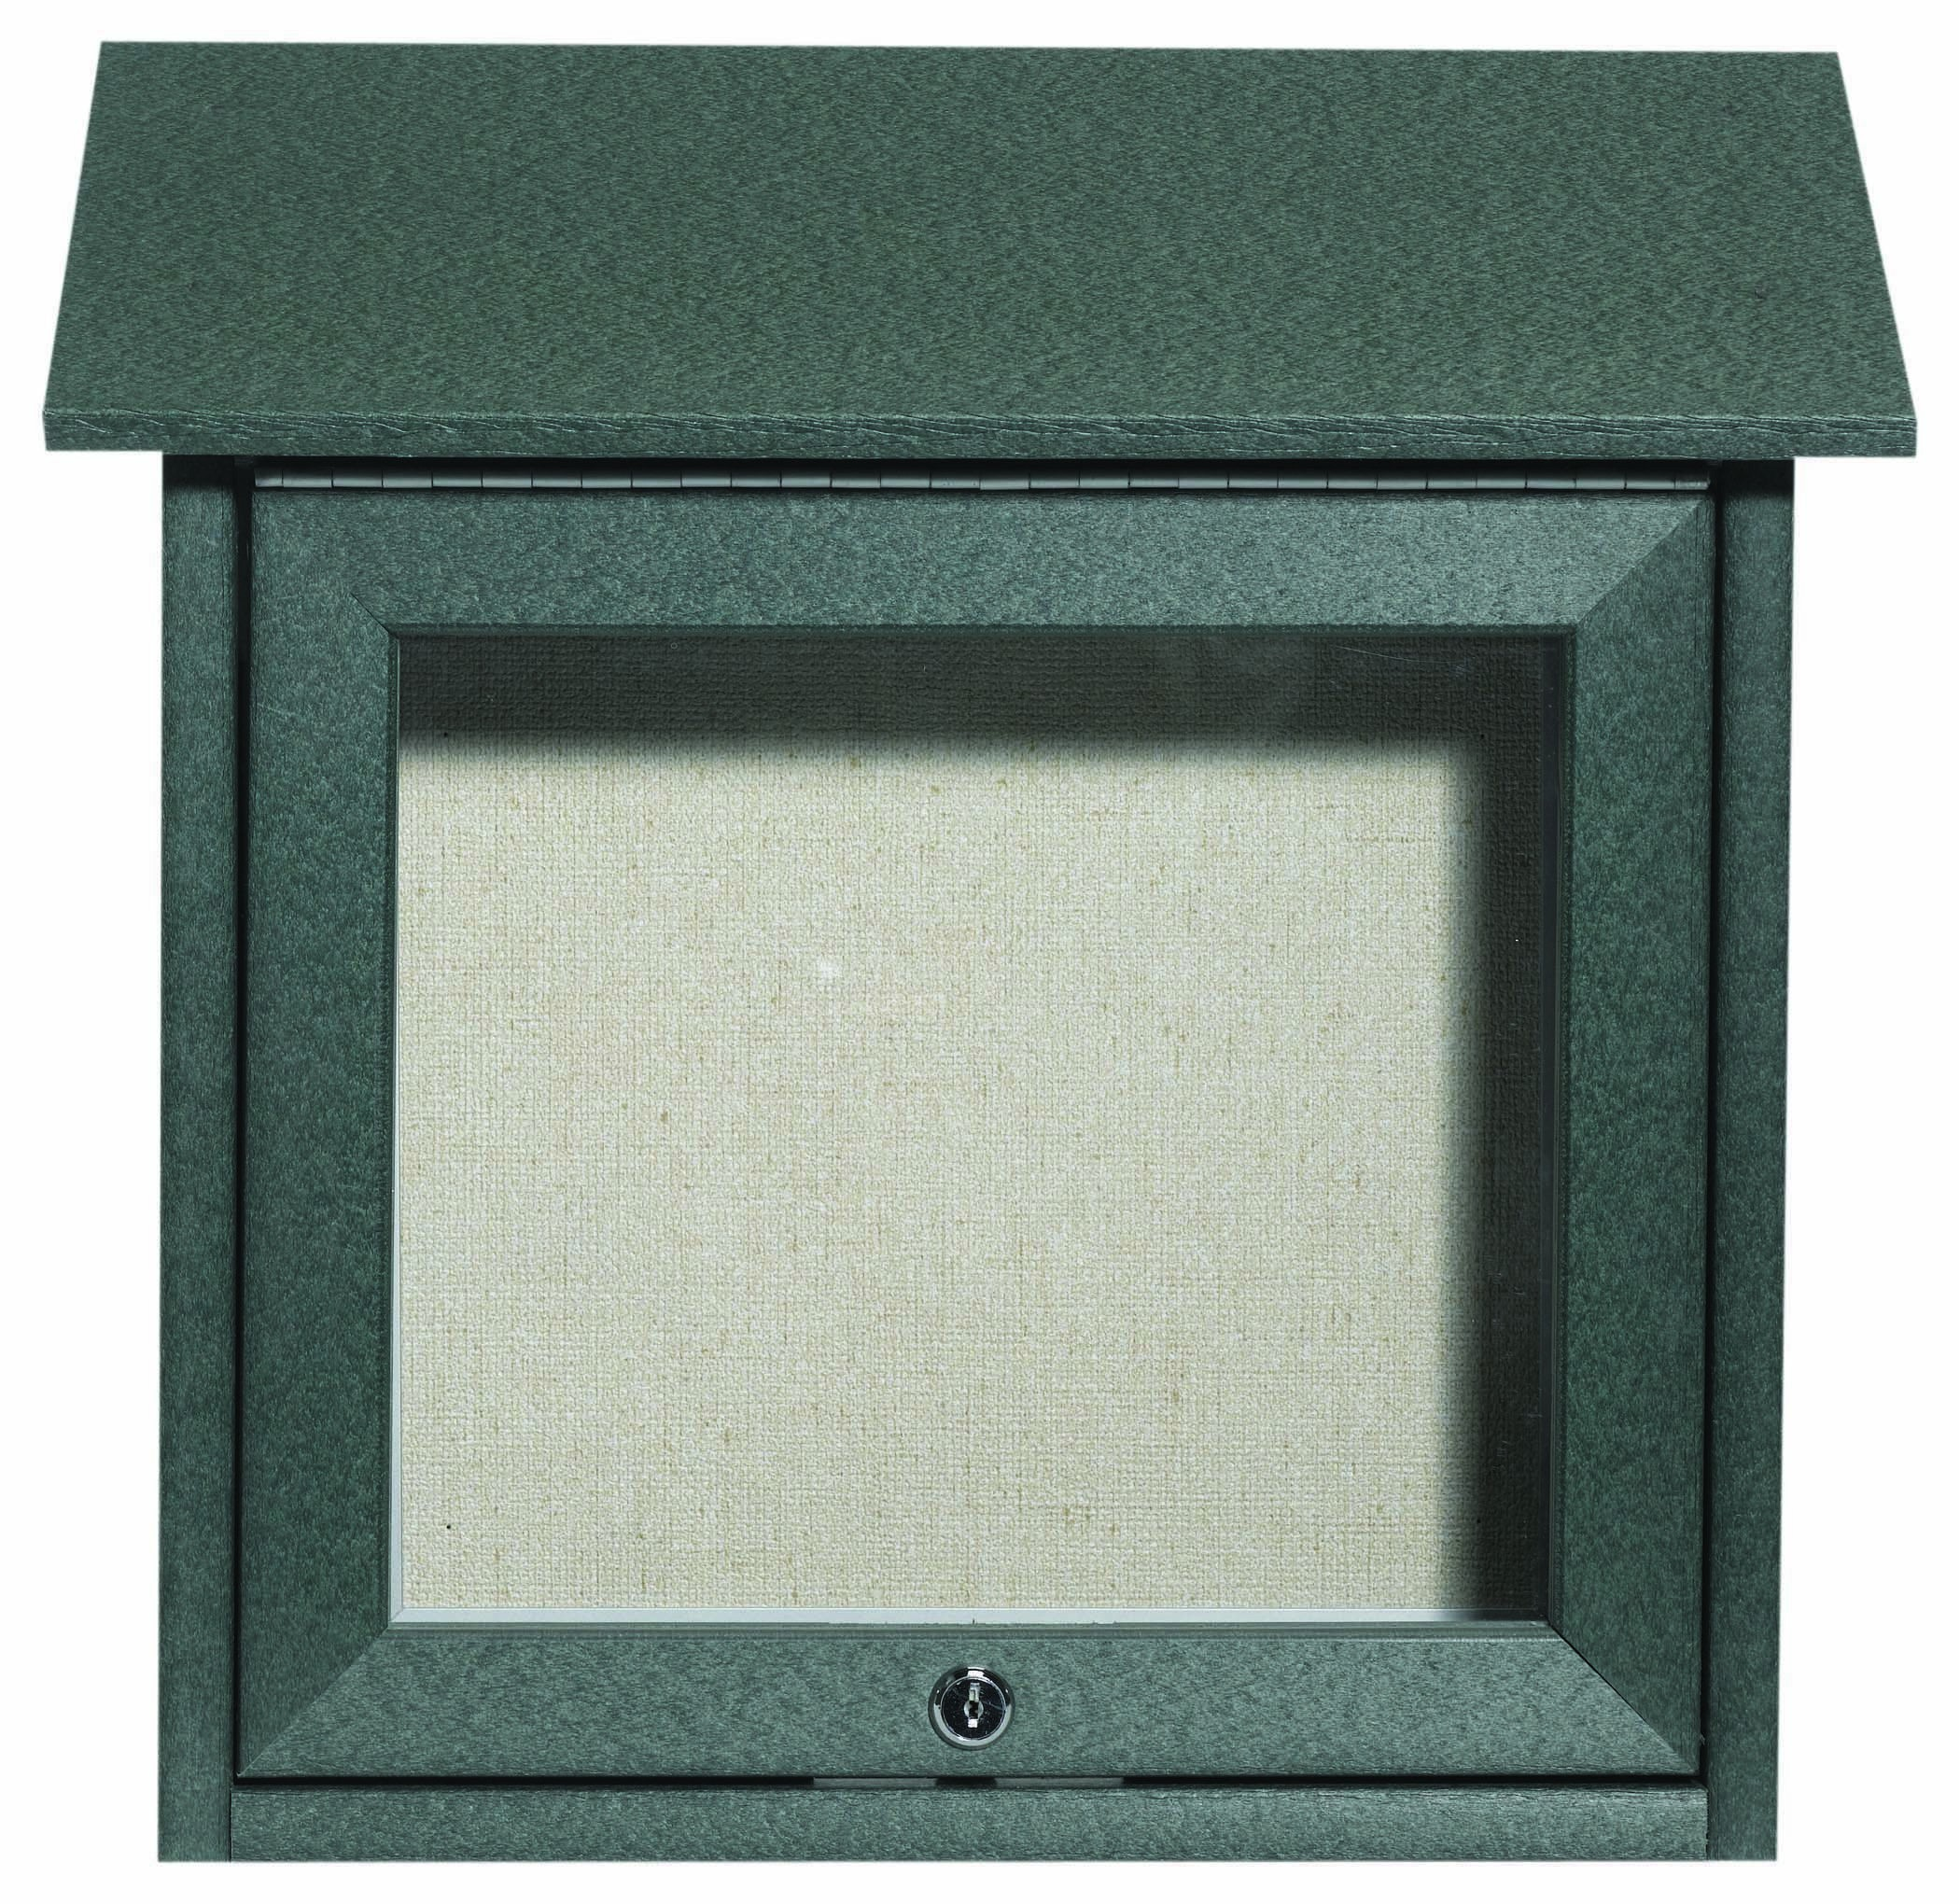 """Aarco Products OPLD1818-4 Green Slimline Series Top Hinged Single Door Plastic Lumber Message Center with Vinyl Posting Surface 18""""H x 18""""W"""